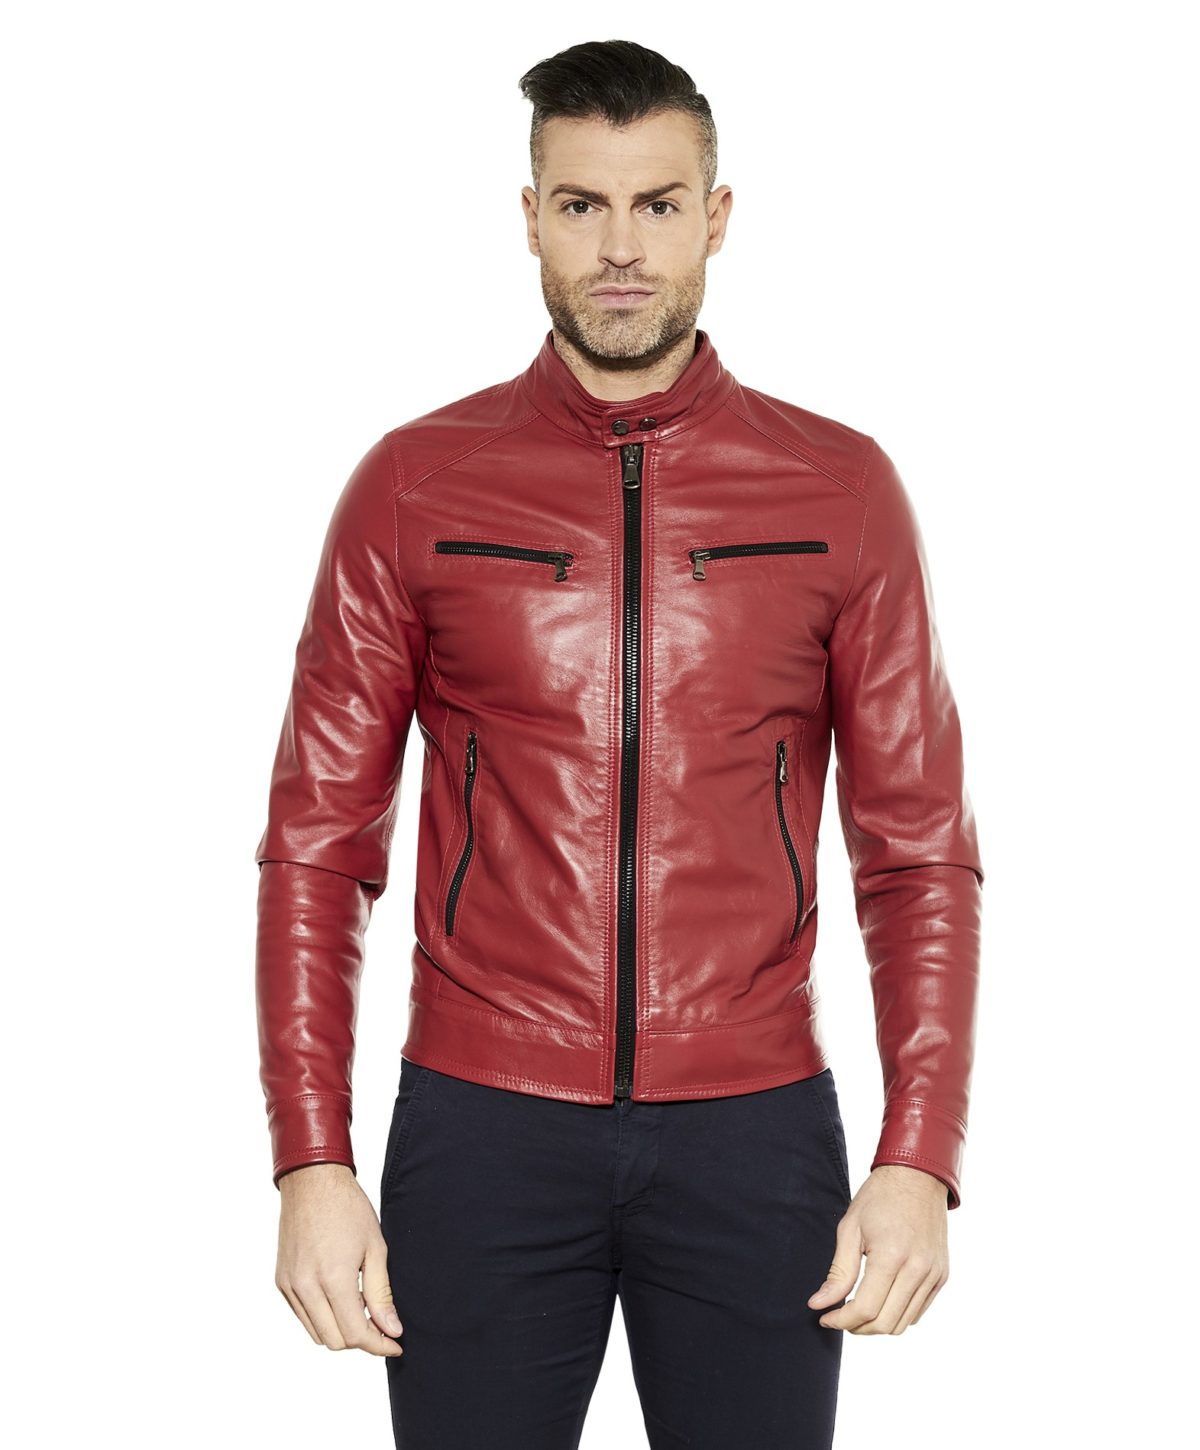 men-s-leather-jacket-genuine-soft-leather-biker-style-collar-mao-red-color-hamilton